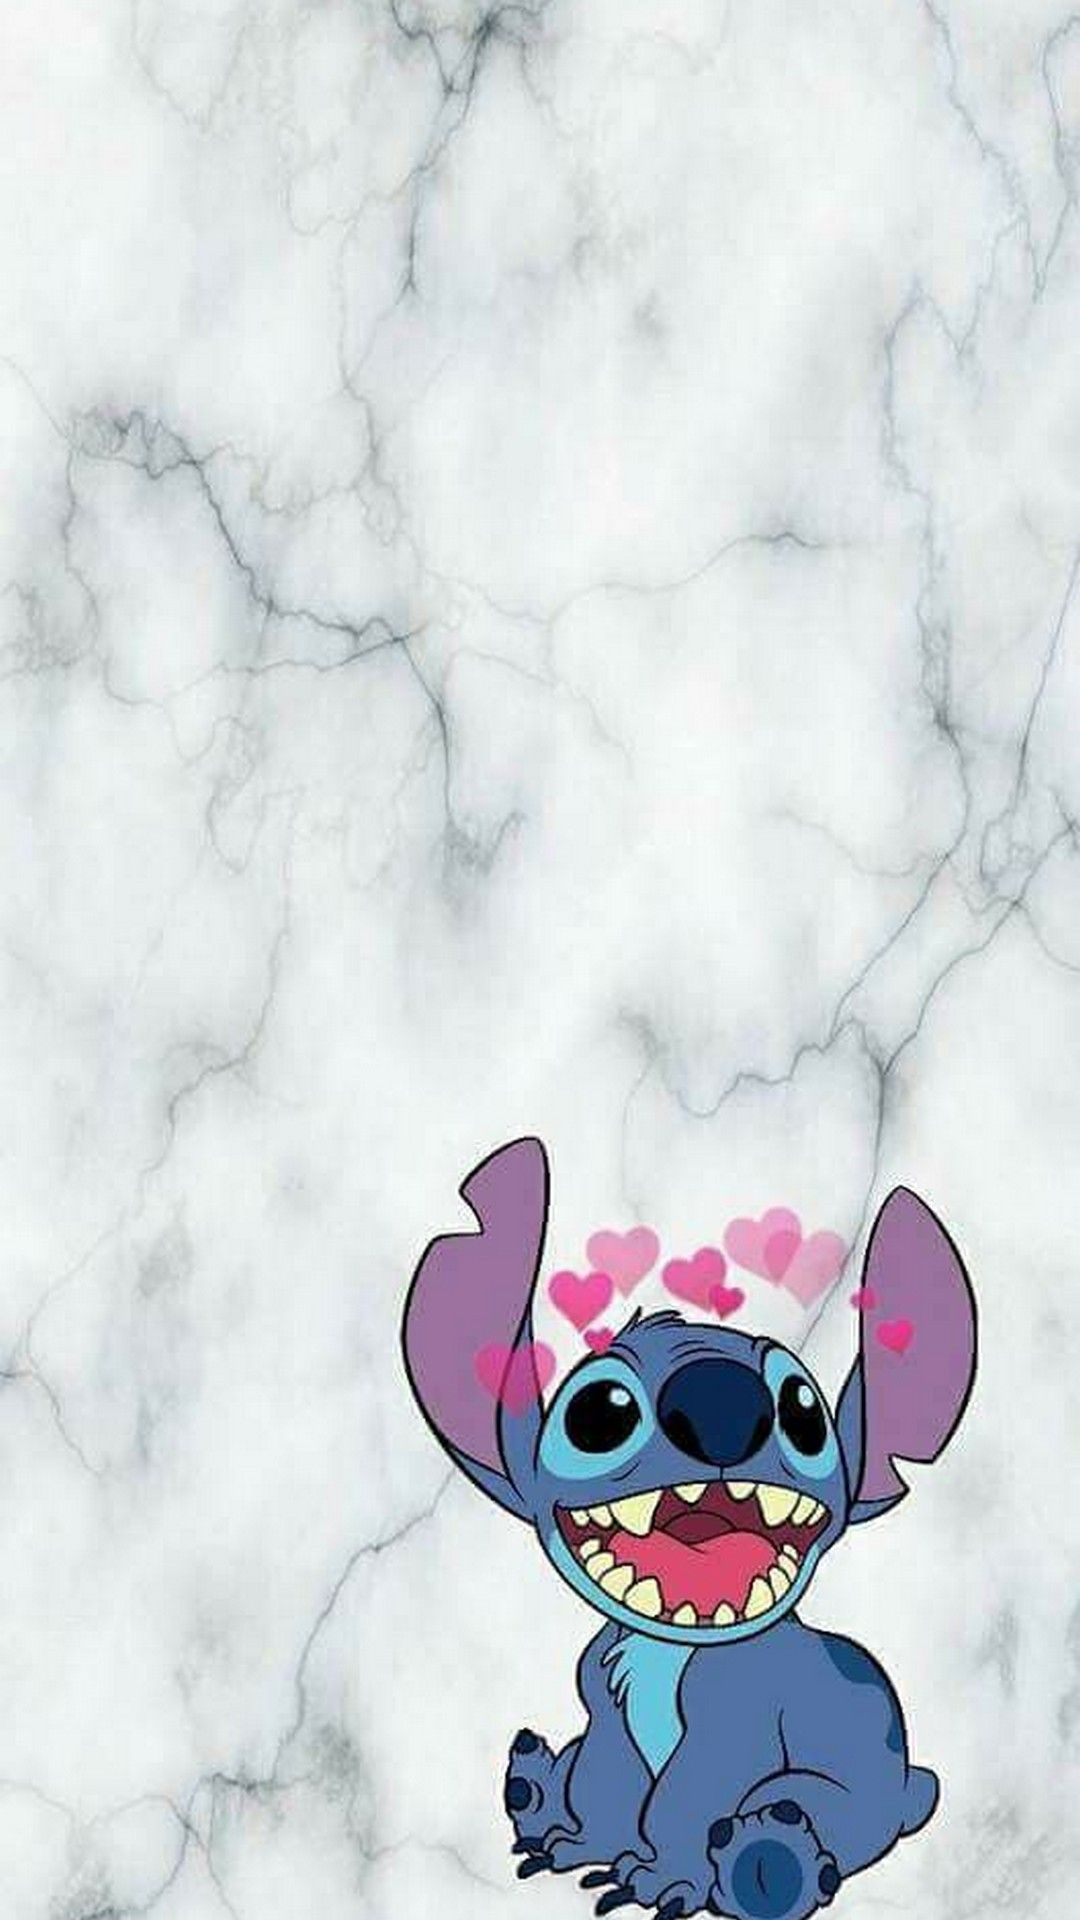 Stitch Wallpaper For Phone Best Hd Wallpapers